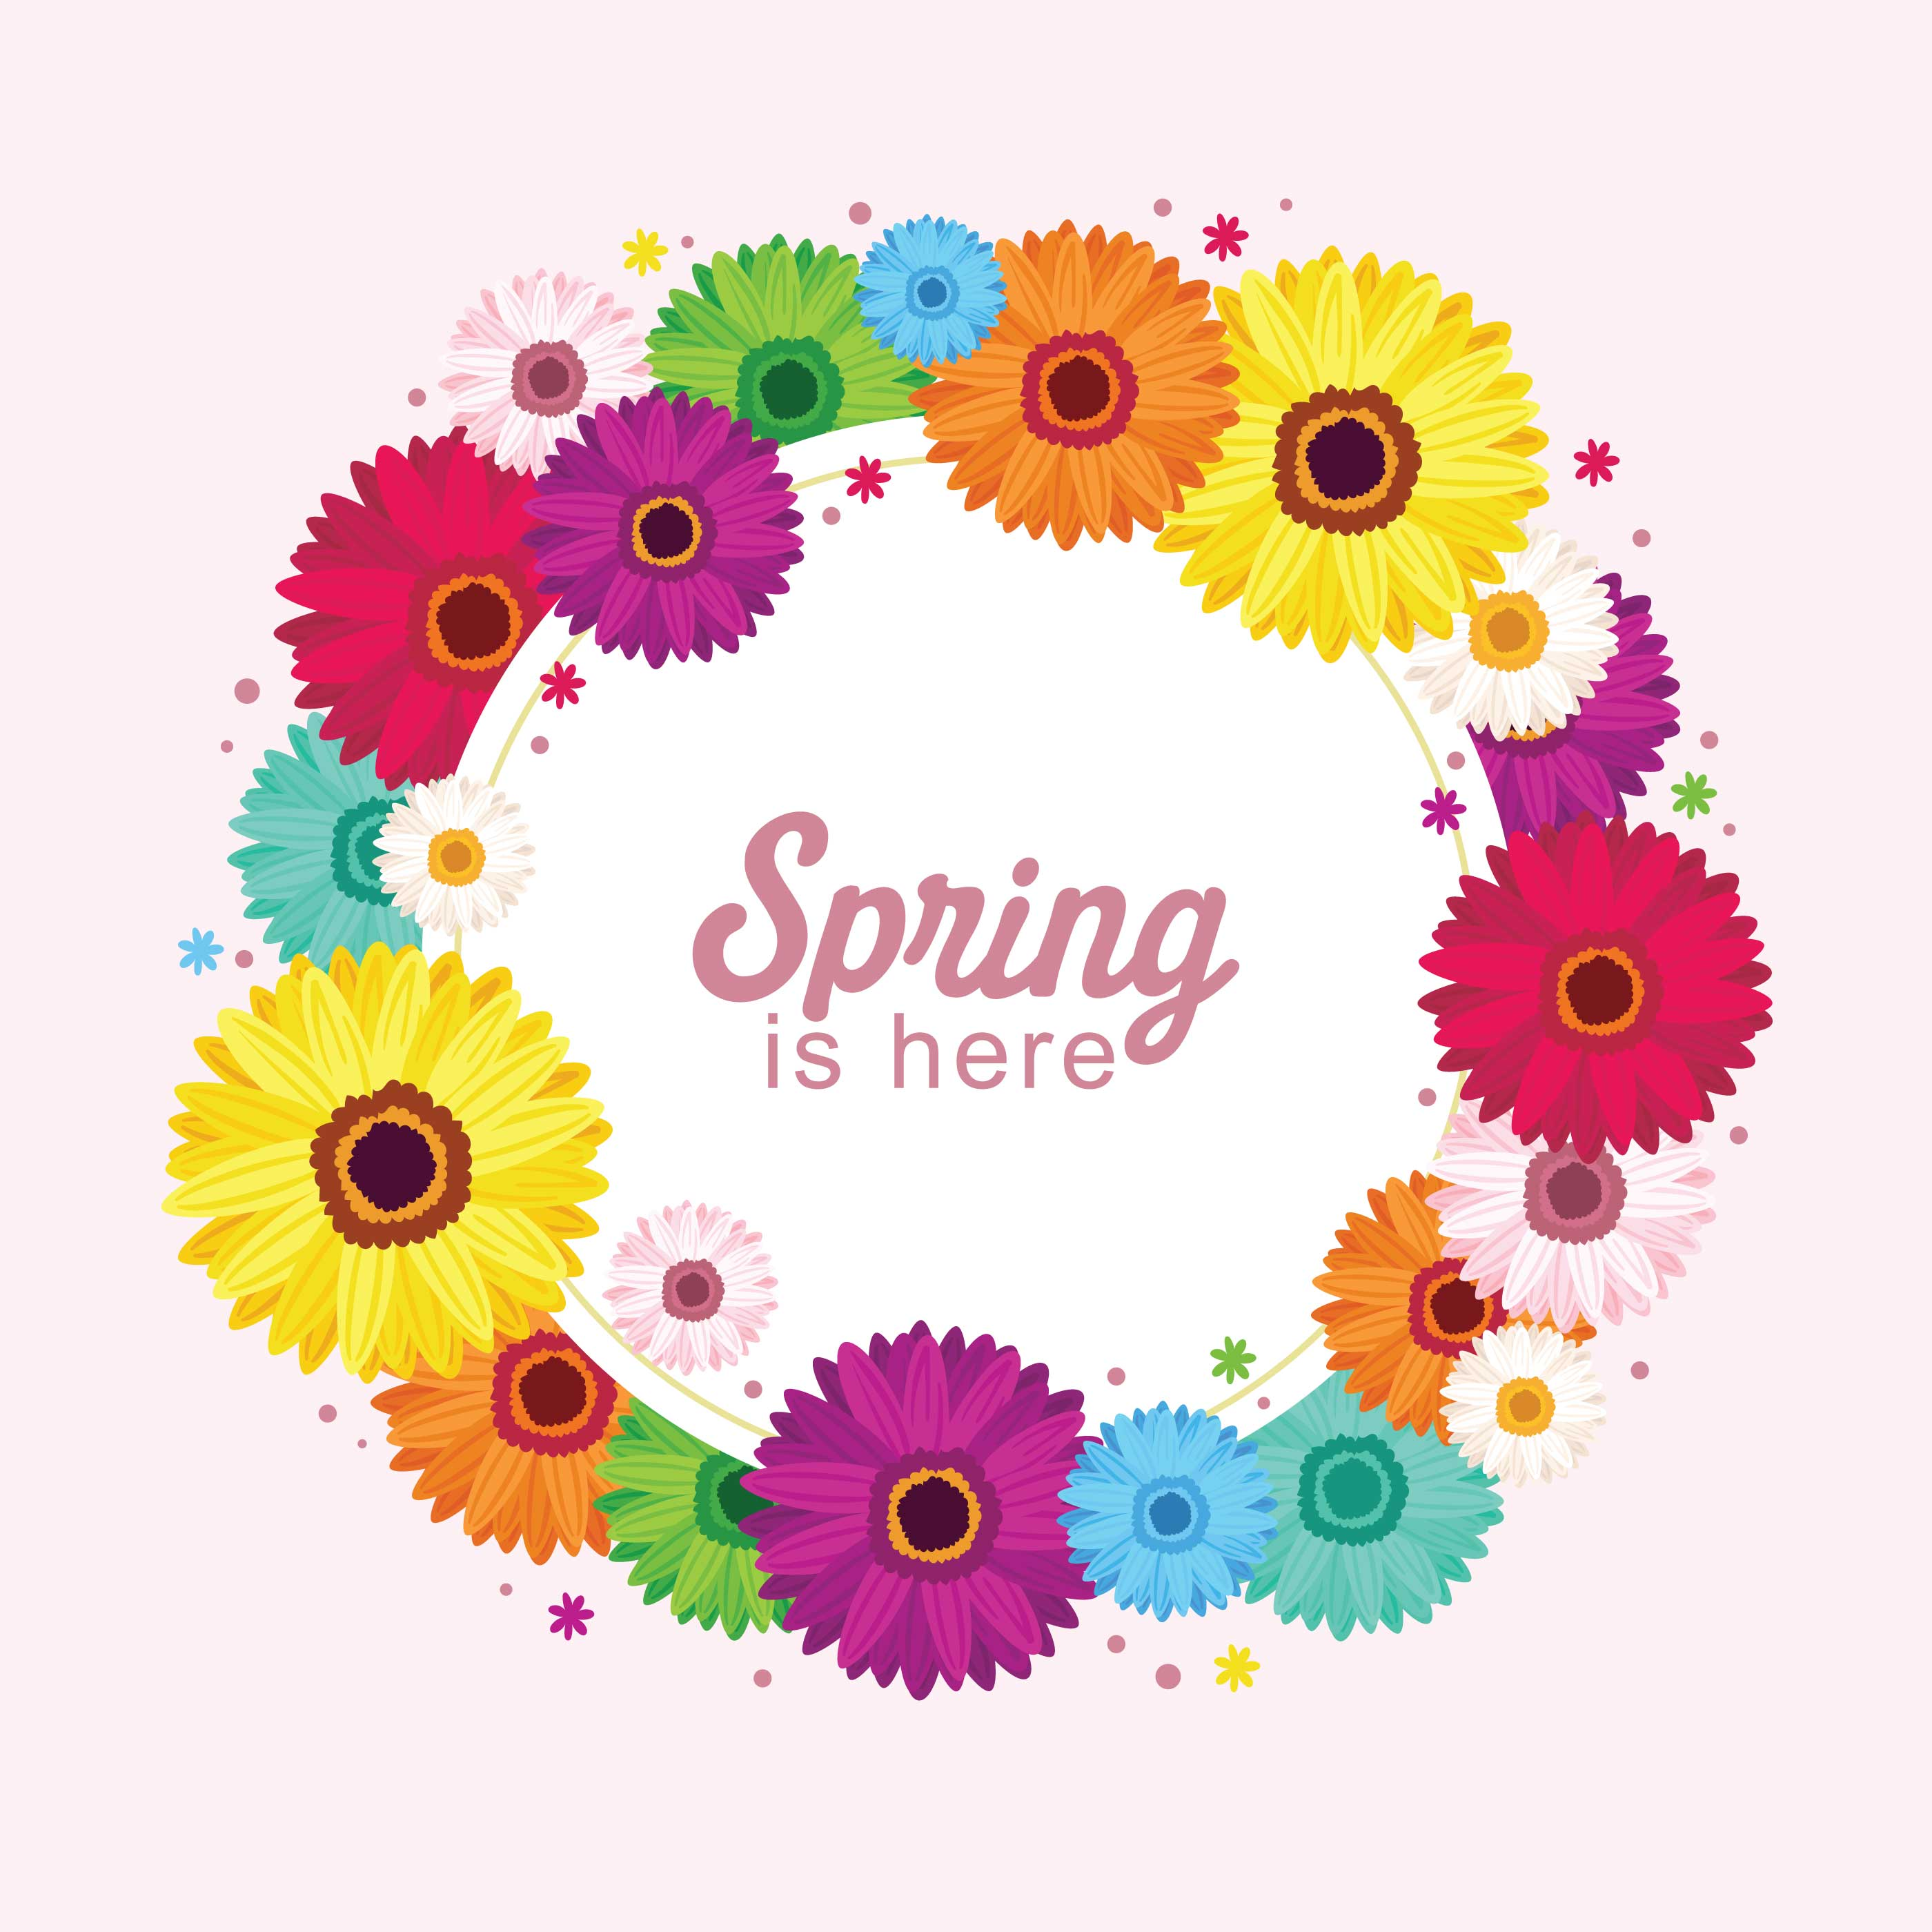 Floral Spring Wreath - Download Free Vector Art, Stock ...